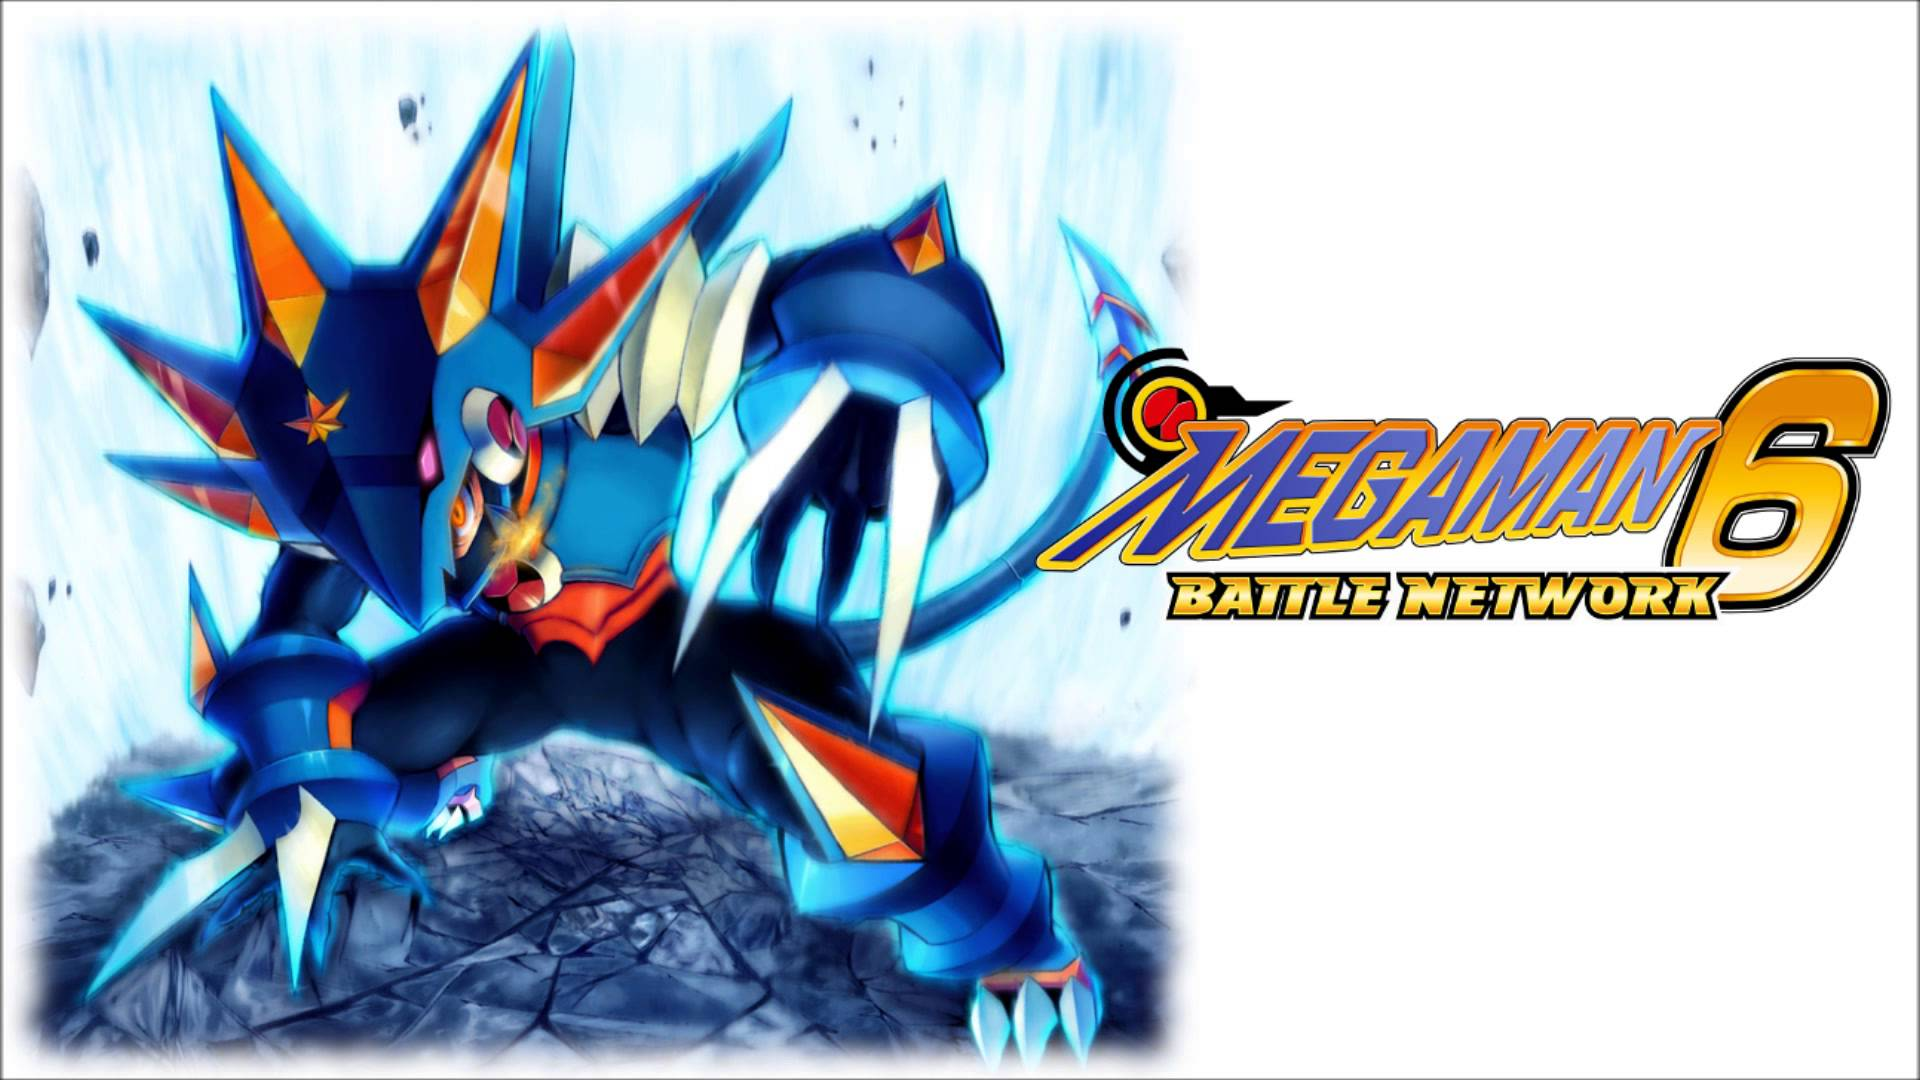 Megaman Battle Network Wallpaper Wallpapersafari